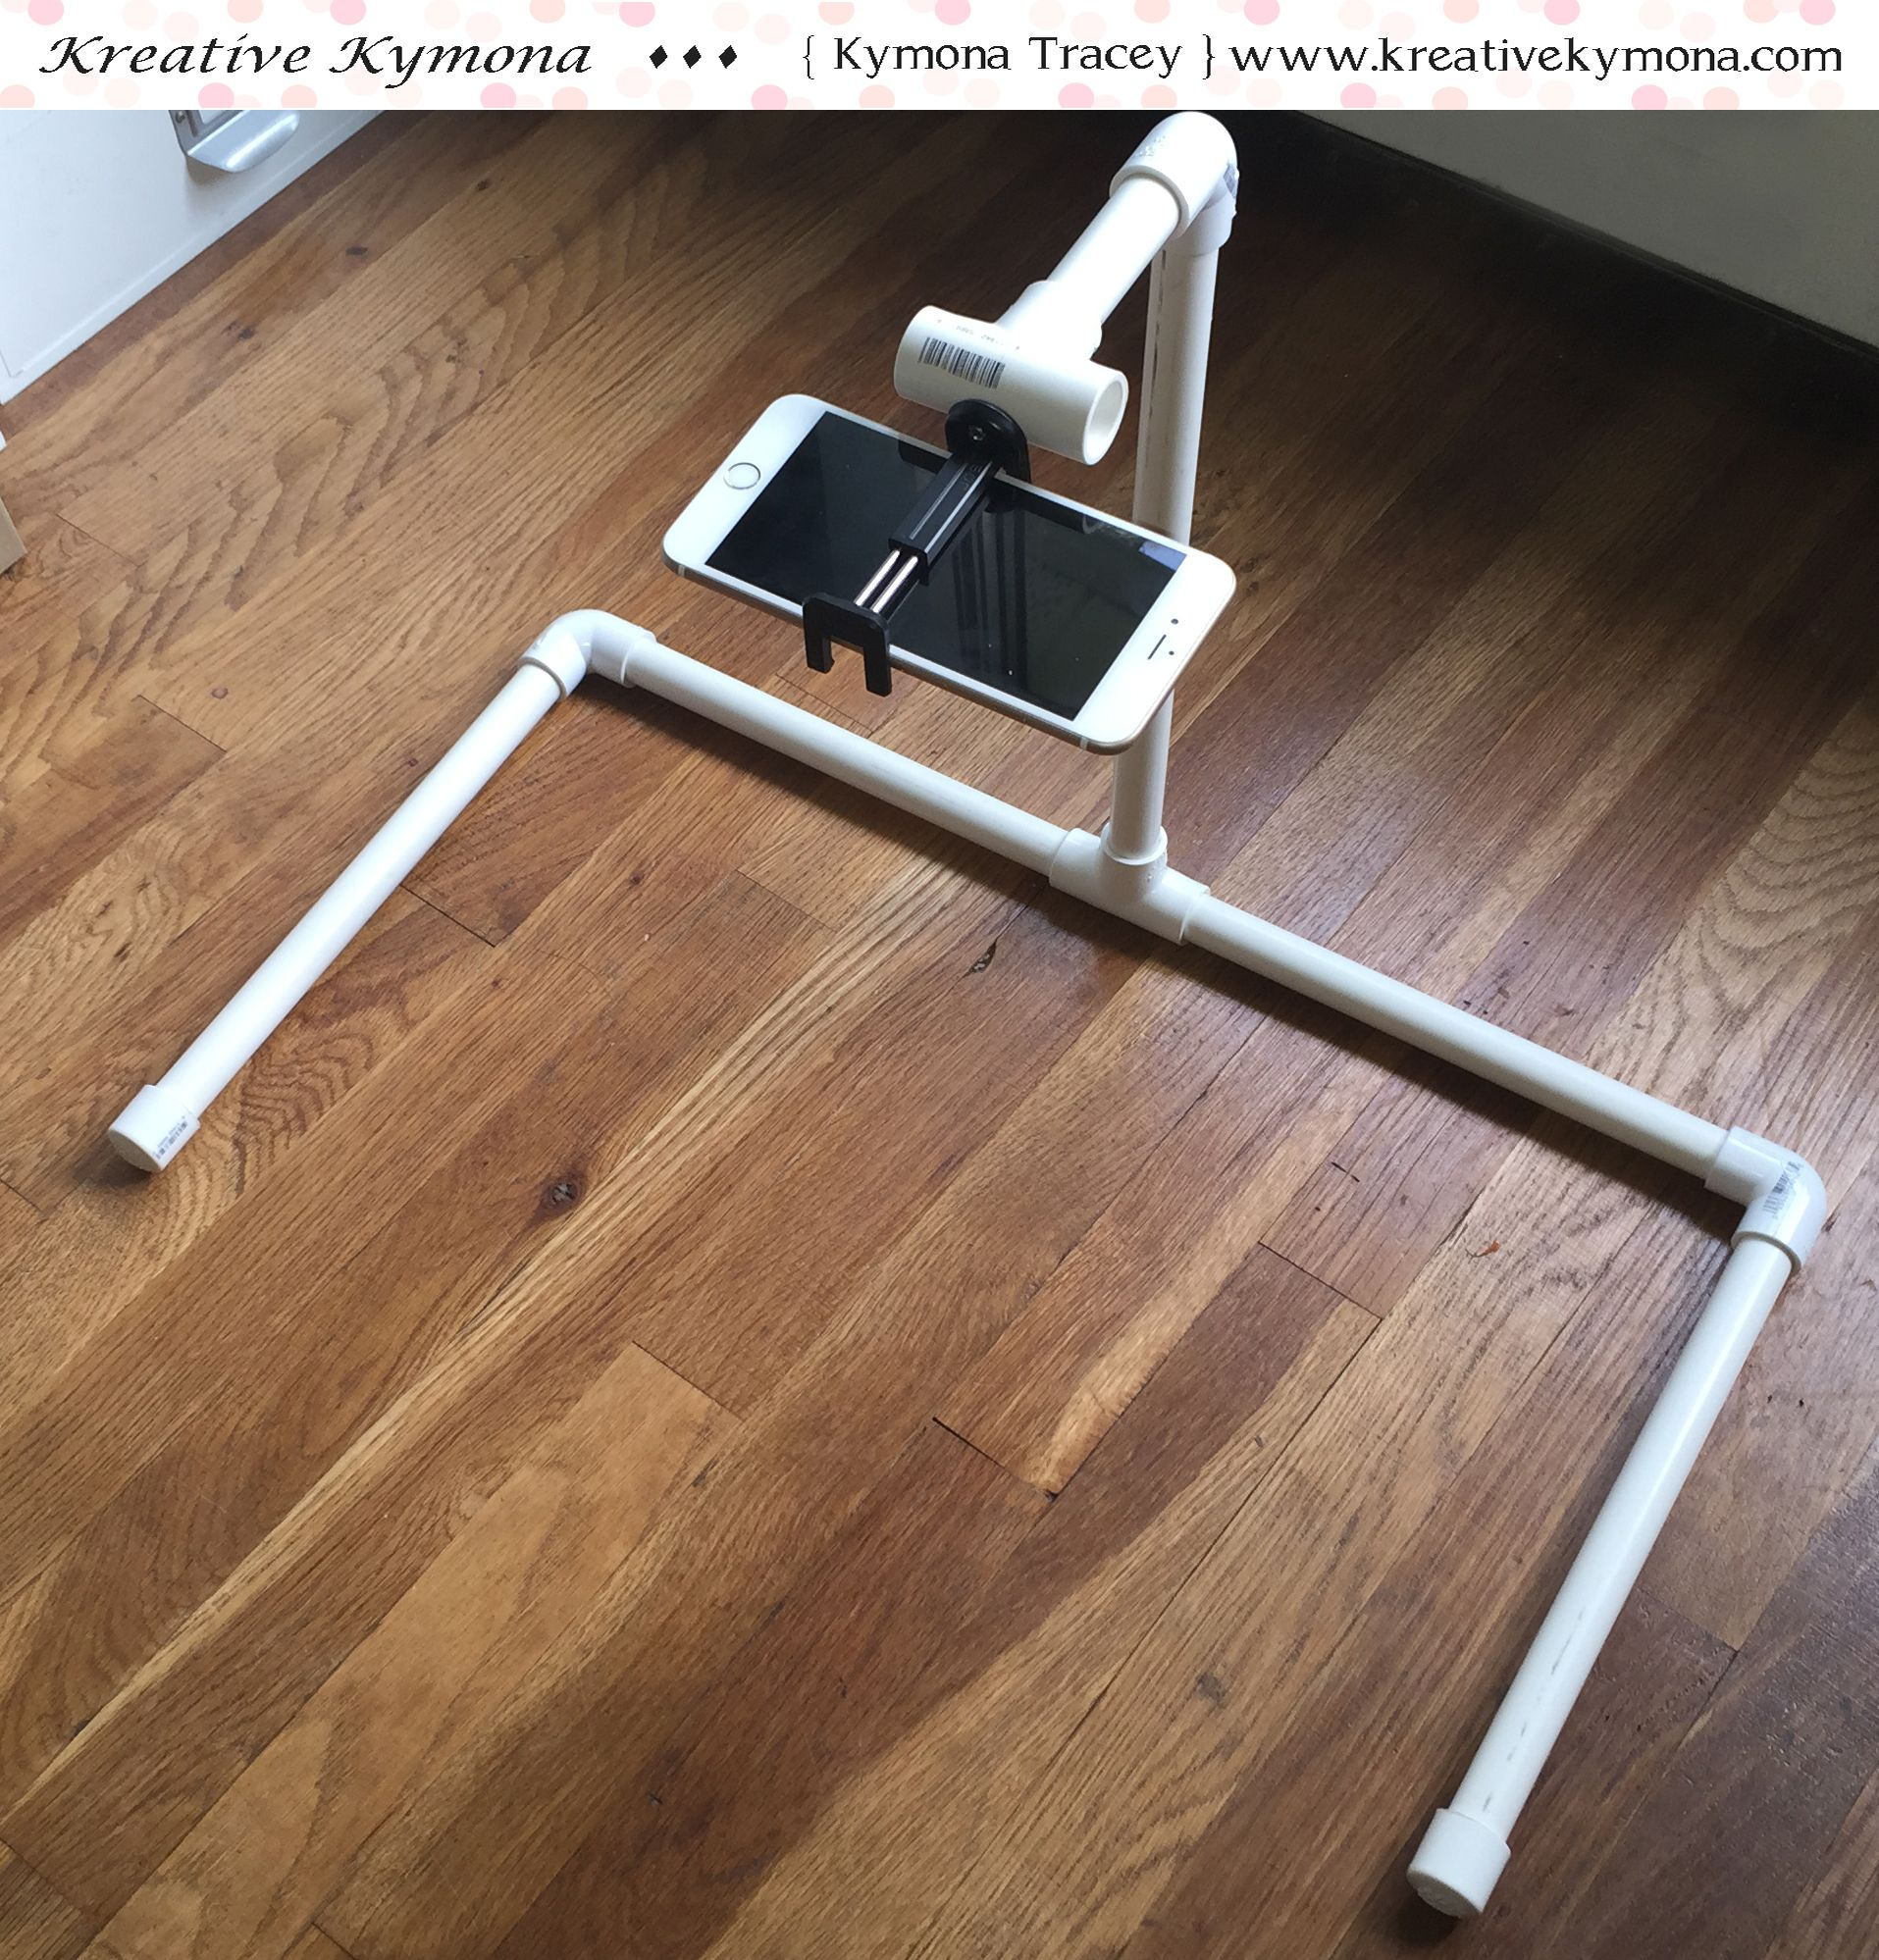 My Overhead Table Top Tripod Diy Tripod Diy Photography Pvc Projects